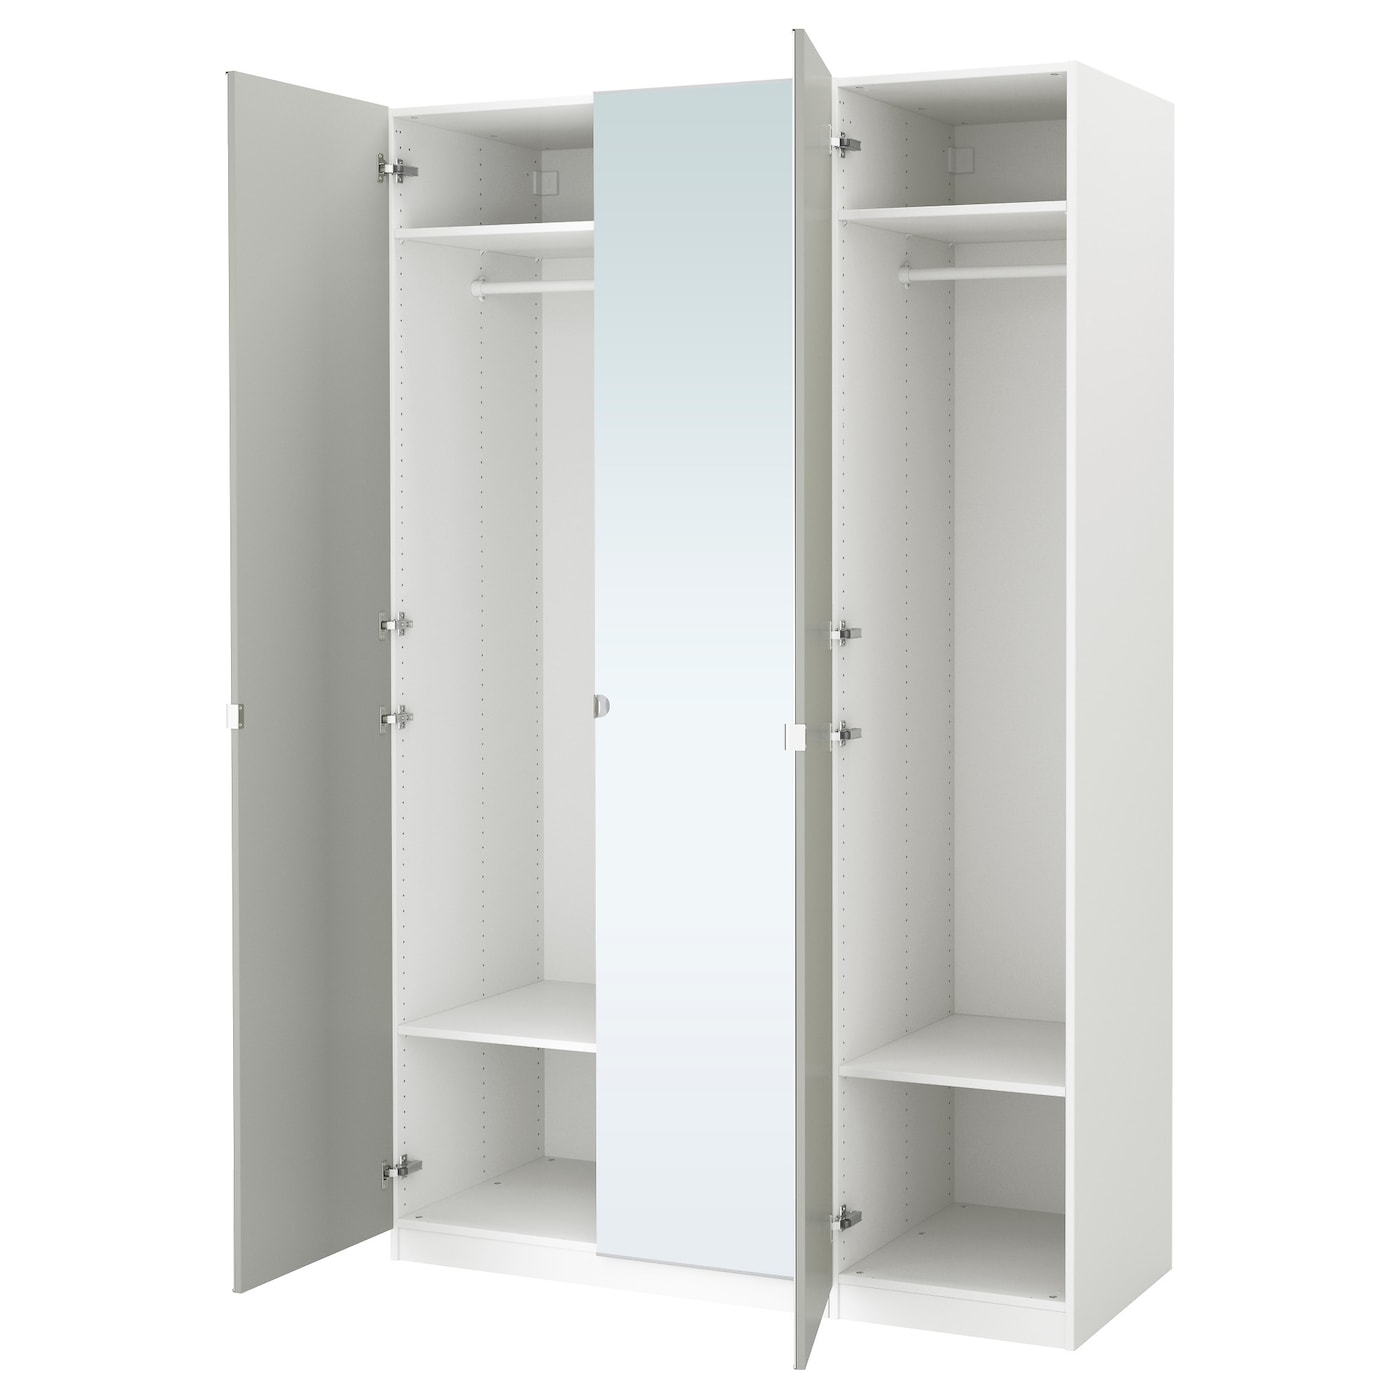 Pax wardrobe white vikedal mirror glass 150x60x236 cm ikea for Miroir mural ikea